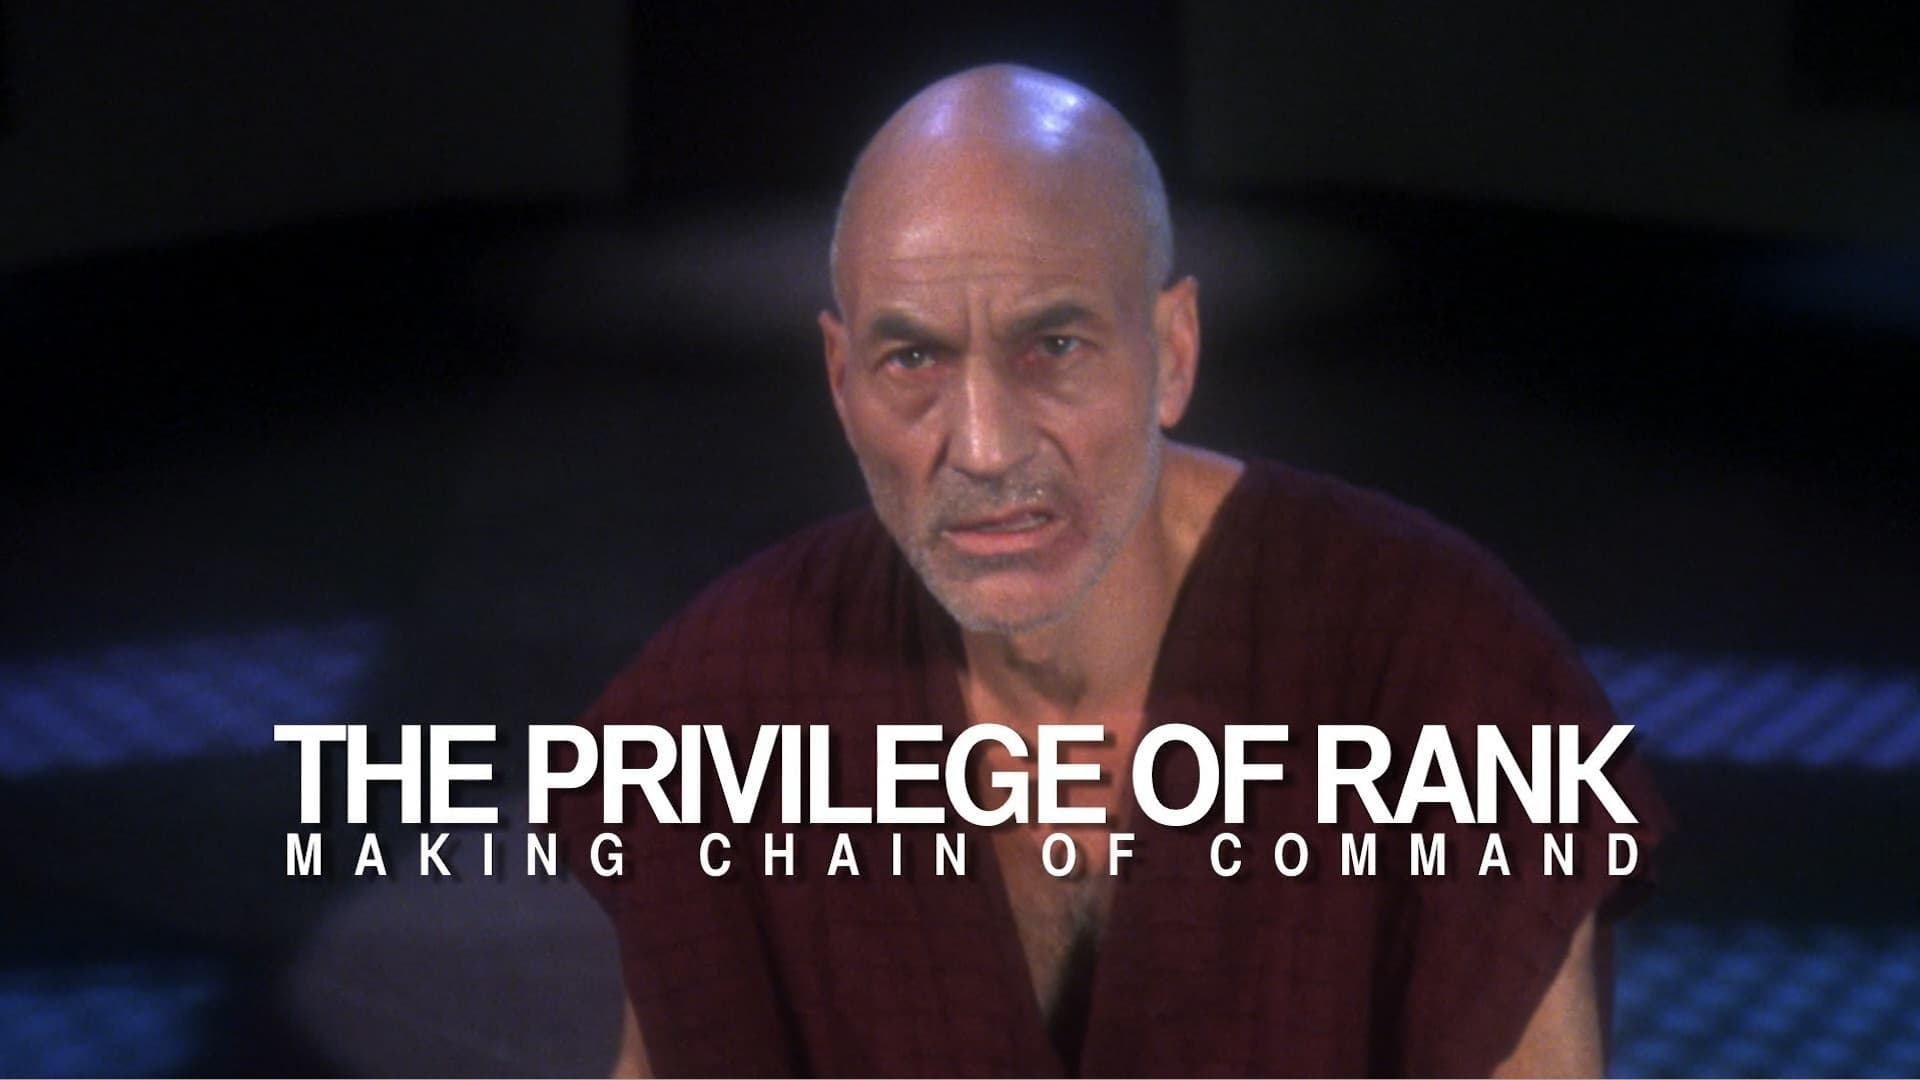 The Privilege of Rank: Making